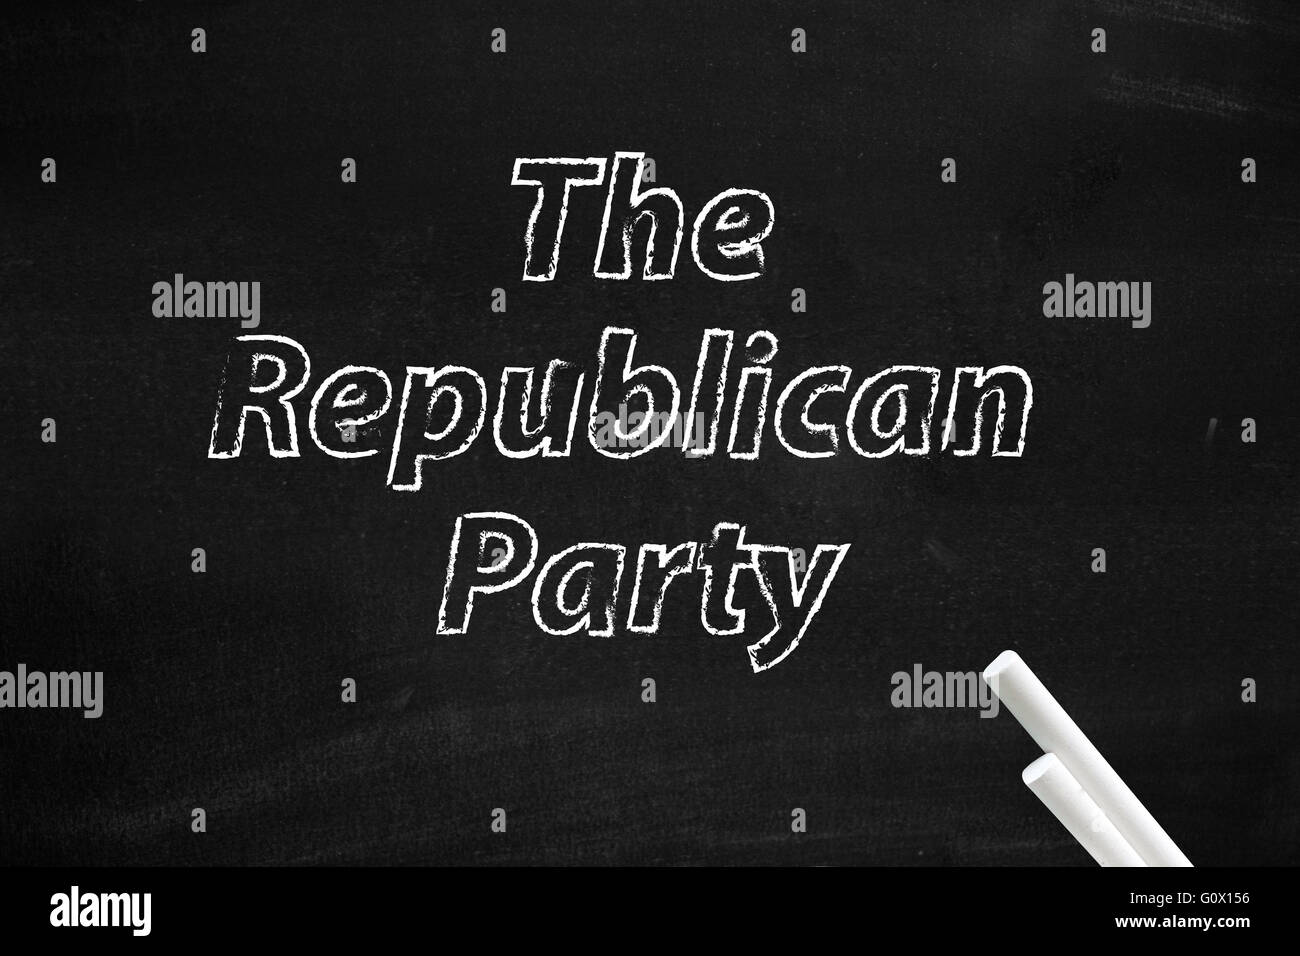 The Republican Party written on board - Stock Image